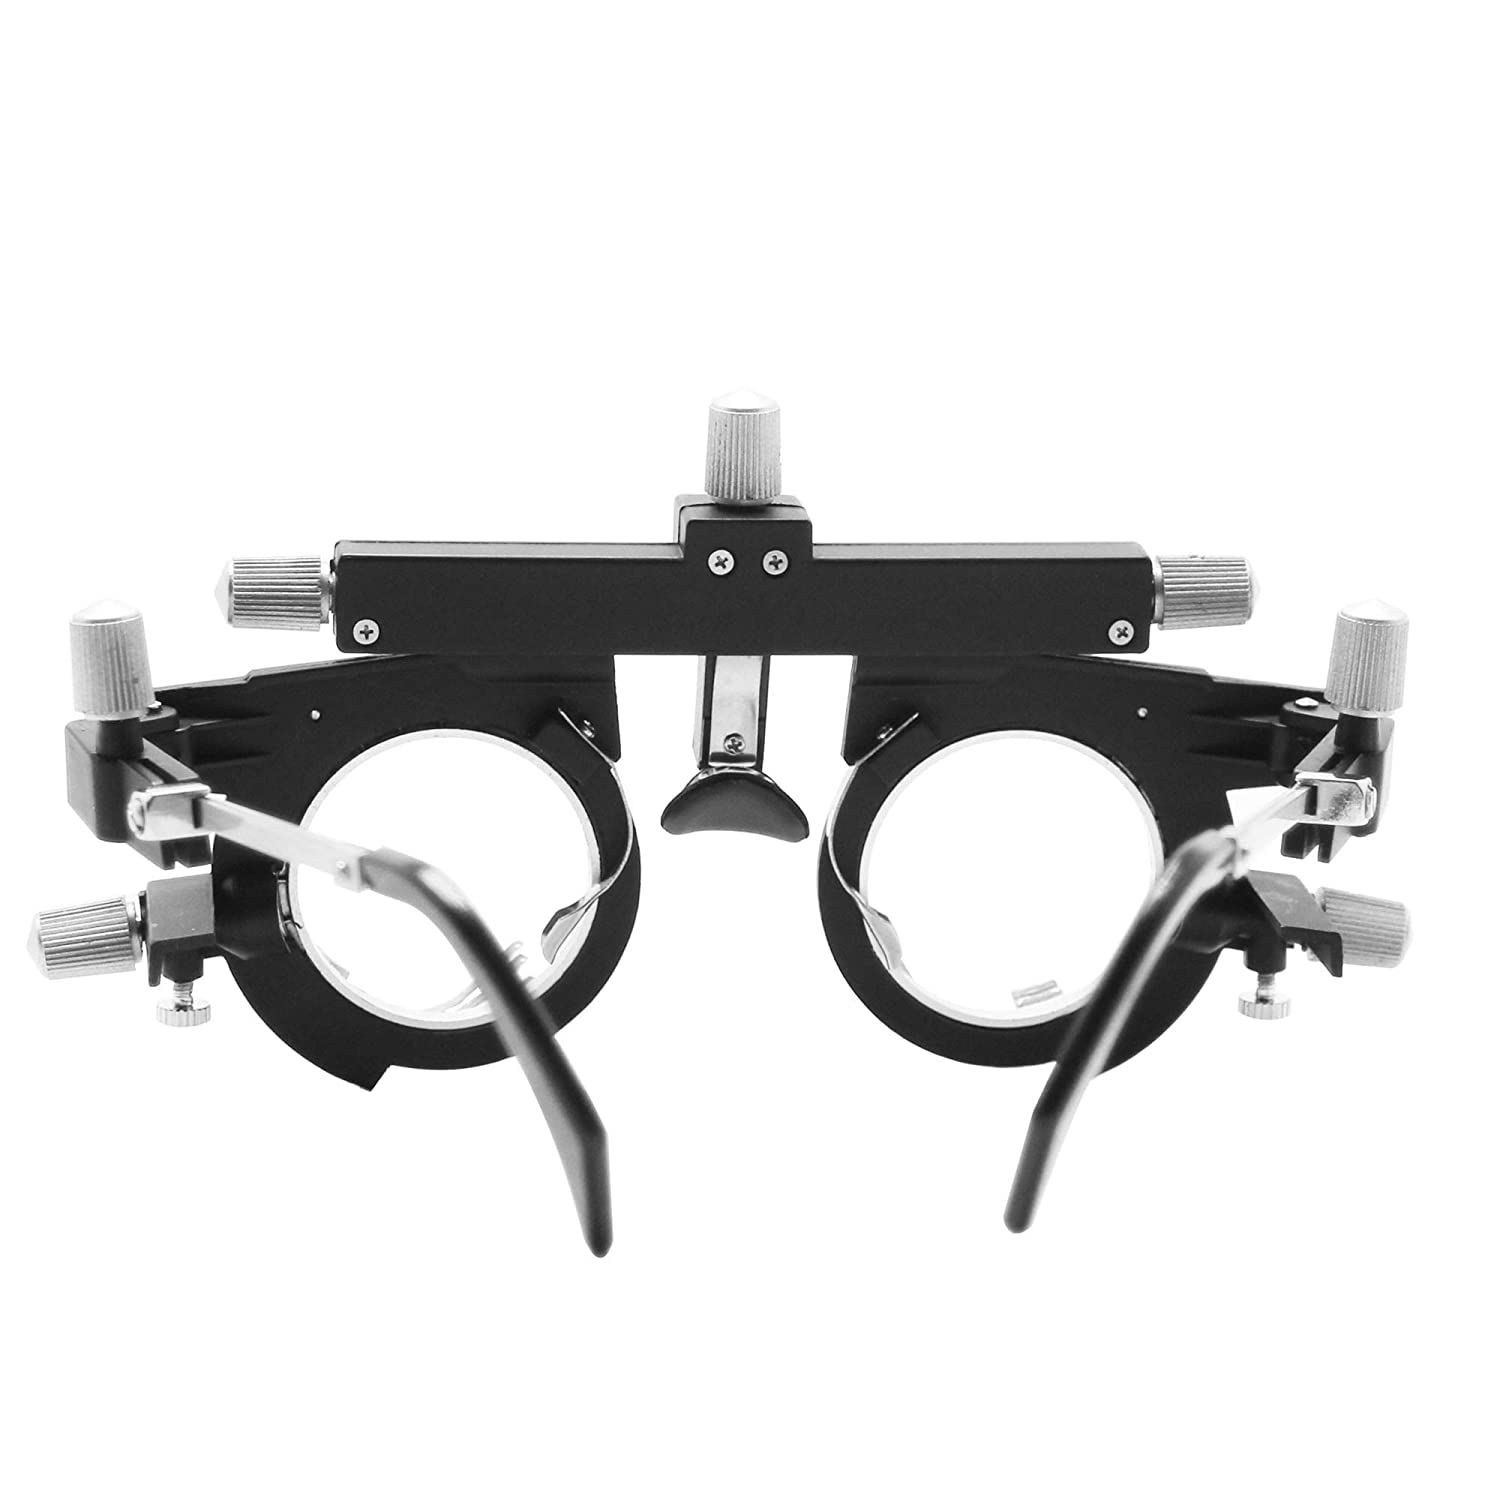 CGOLDENWALL Glasses Optometry Trial Frame Adjustable Precision Optic Trial Eye Optical Lens Frame EyeTest Optician 48-80mm